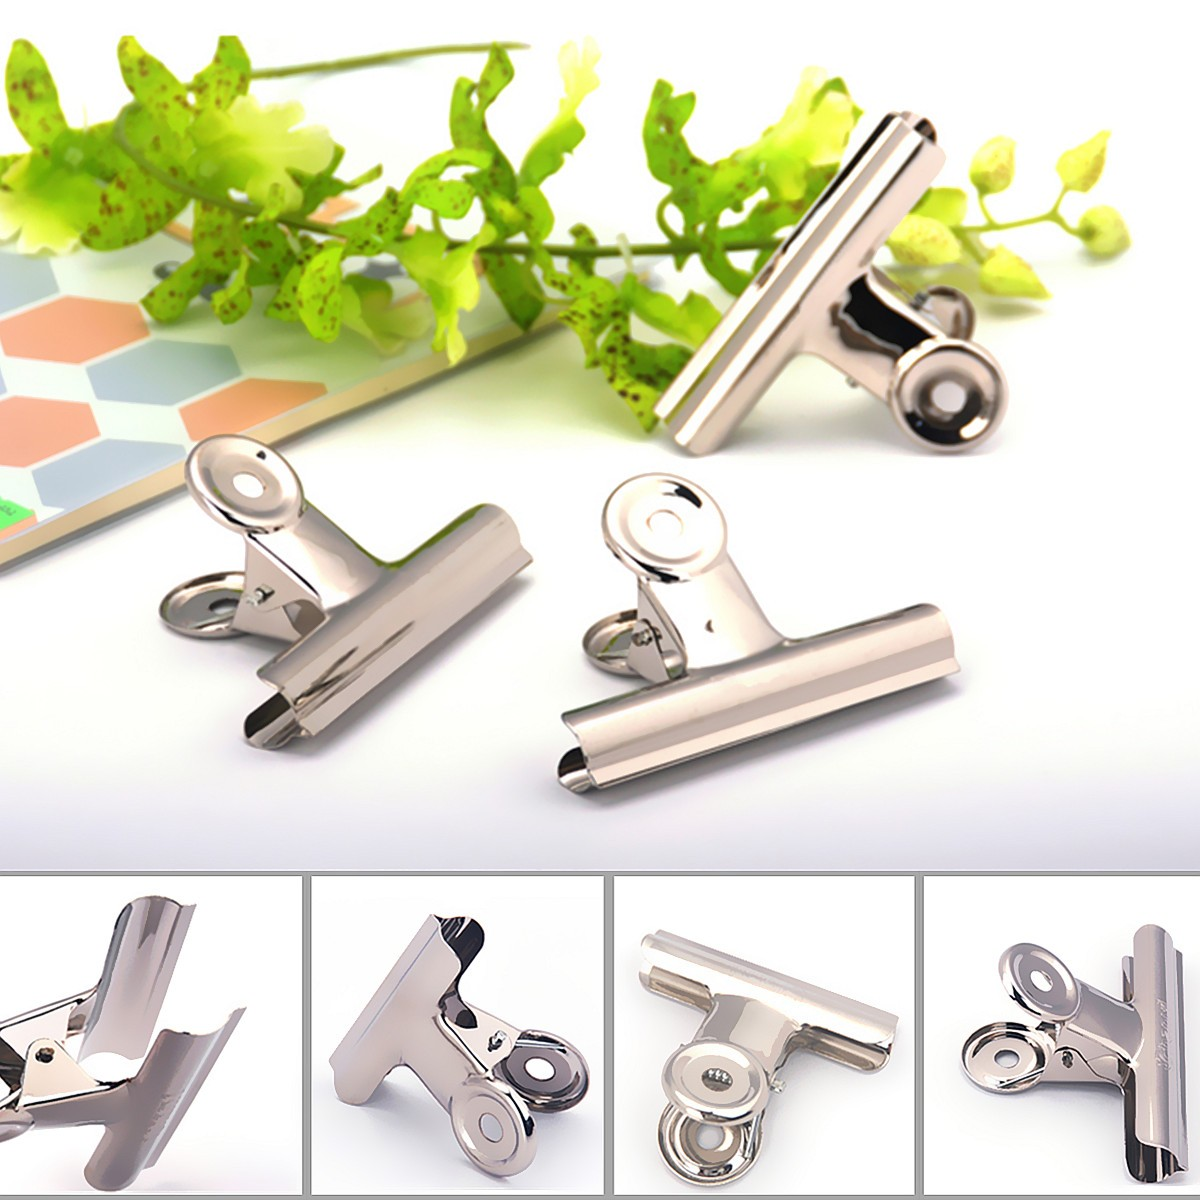 10pcs 31mm Stainless Steel Silver Bulldog Clips Money Letter Paper File Clamps